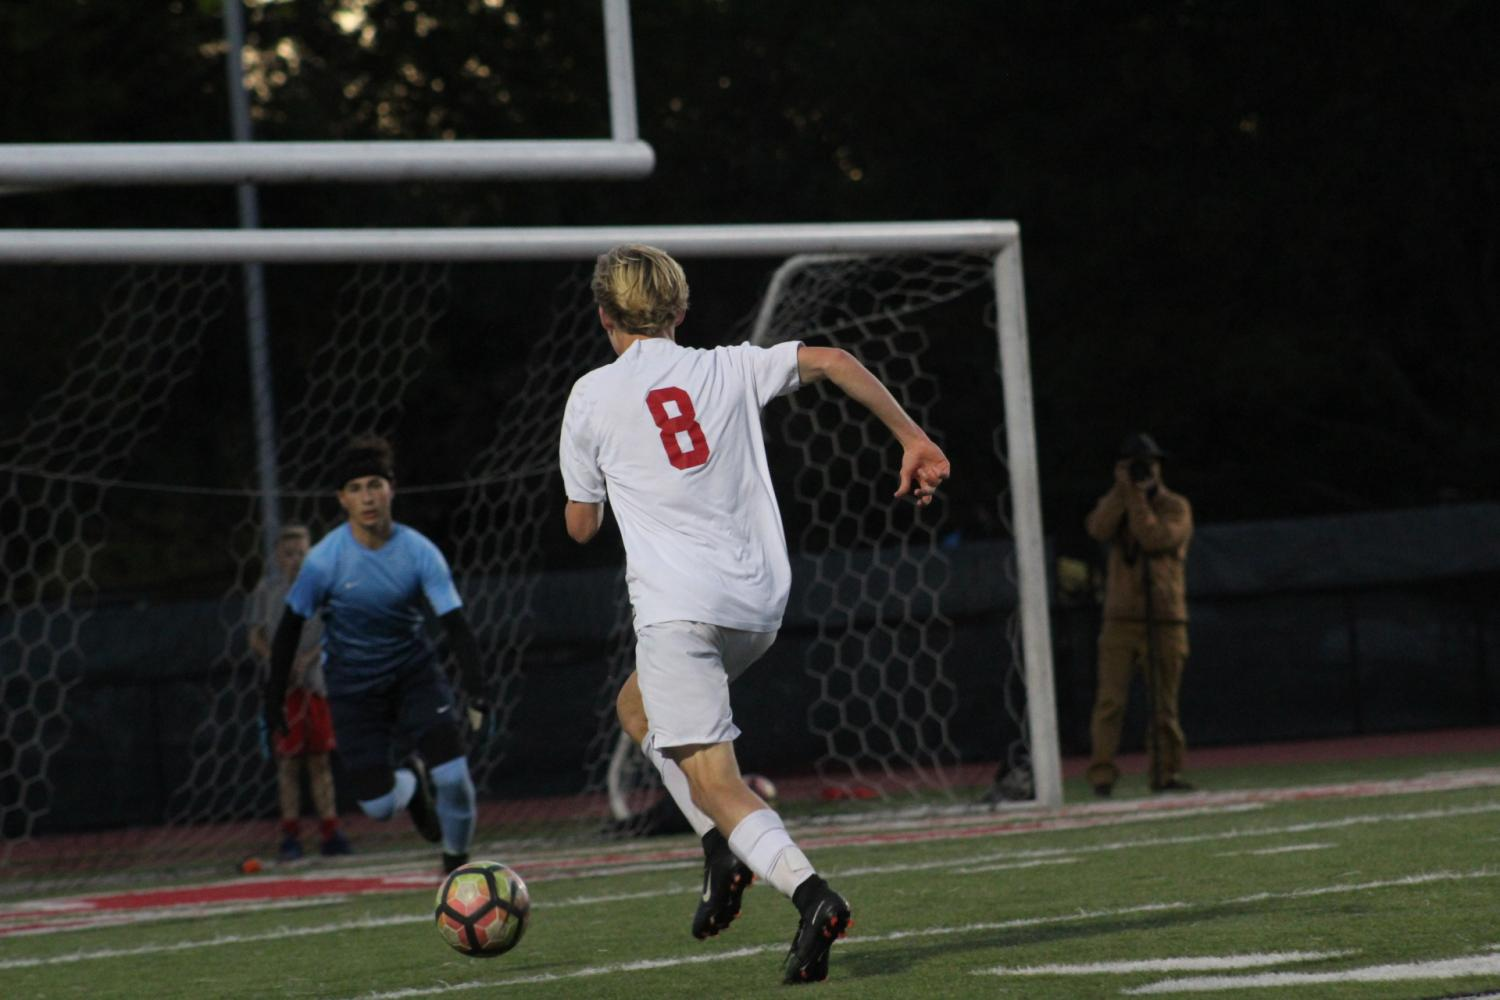 Sawyer+Hardy%2C+sophomore%2C+dribbles+the+ball+up+the+field+towards+the+goal.